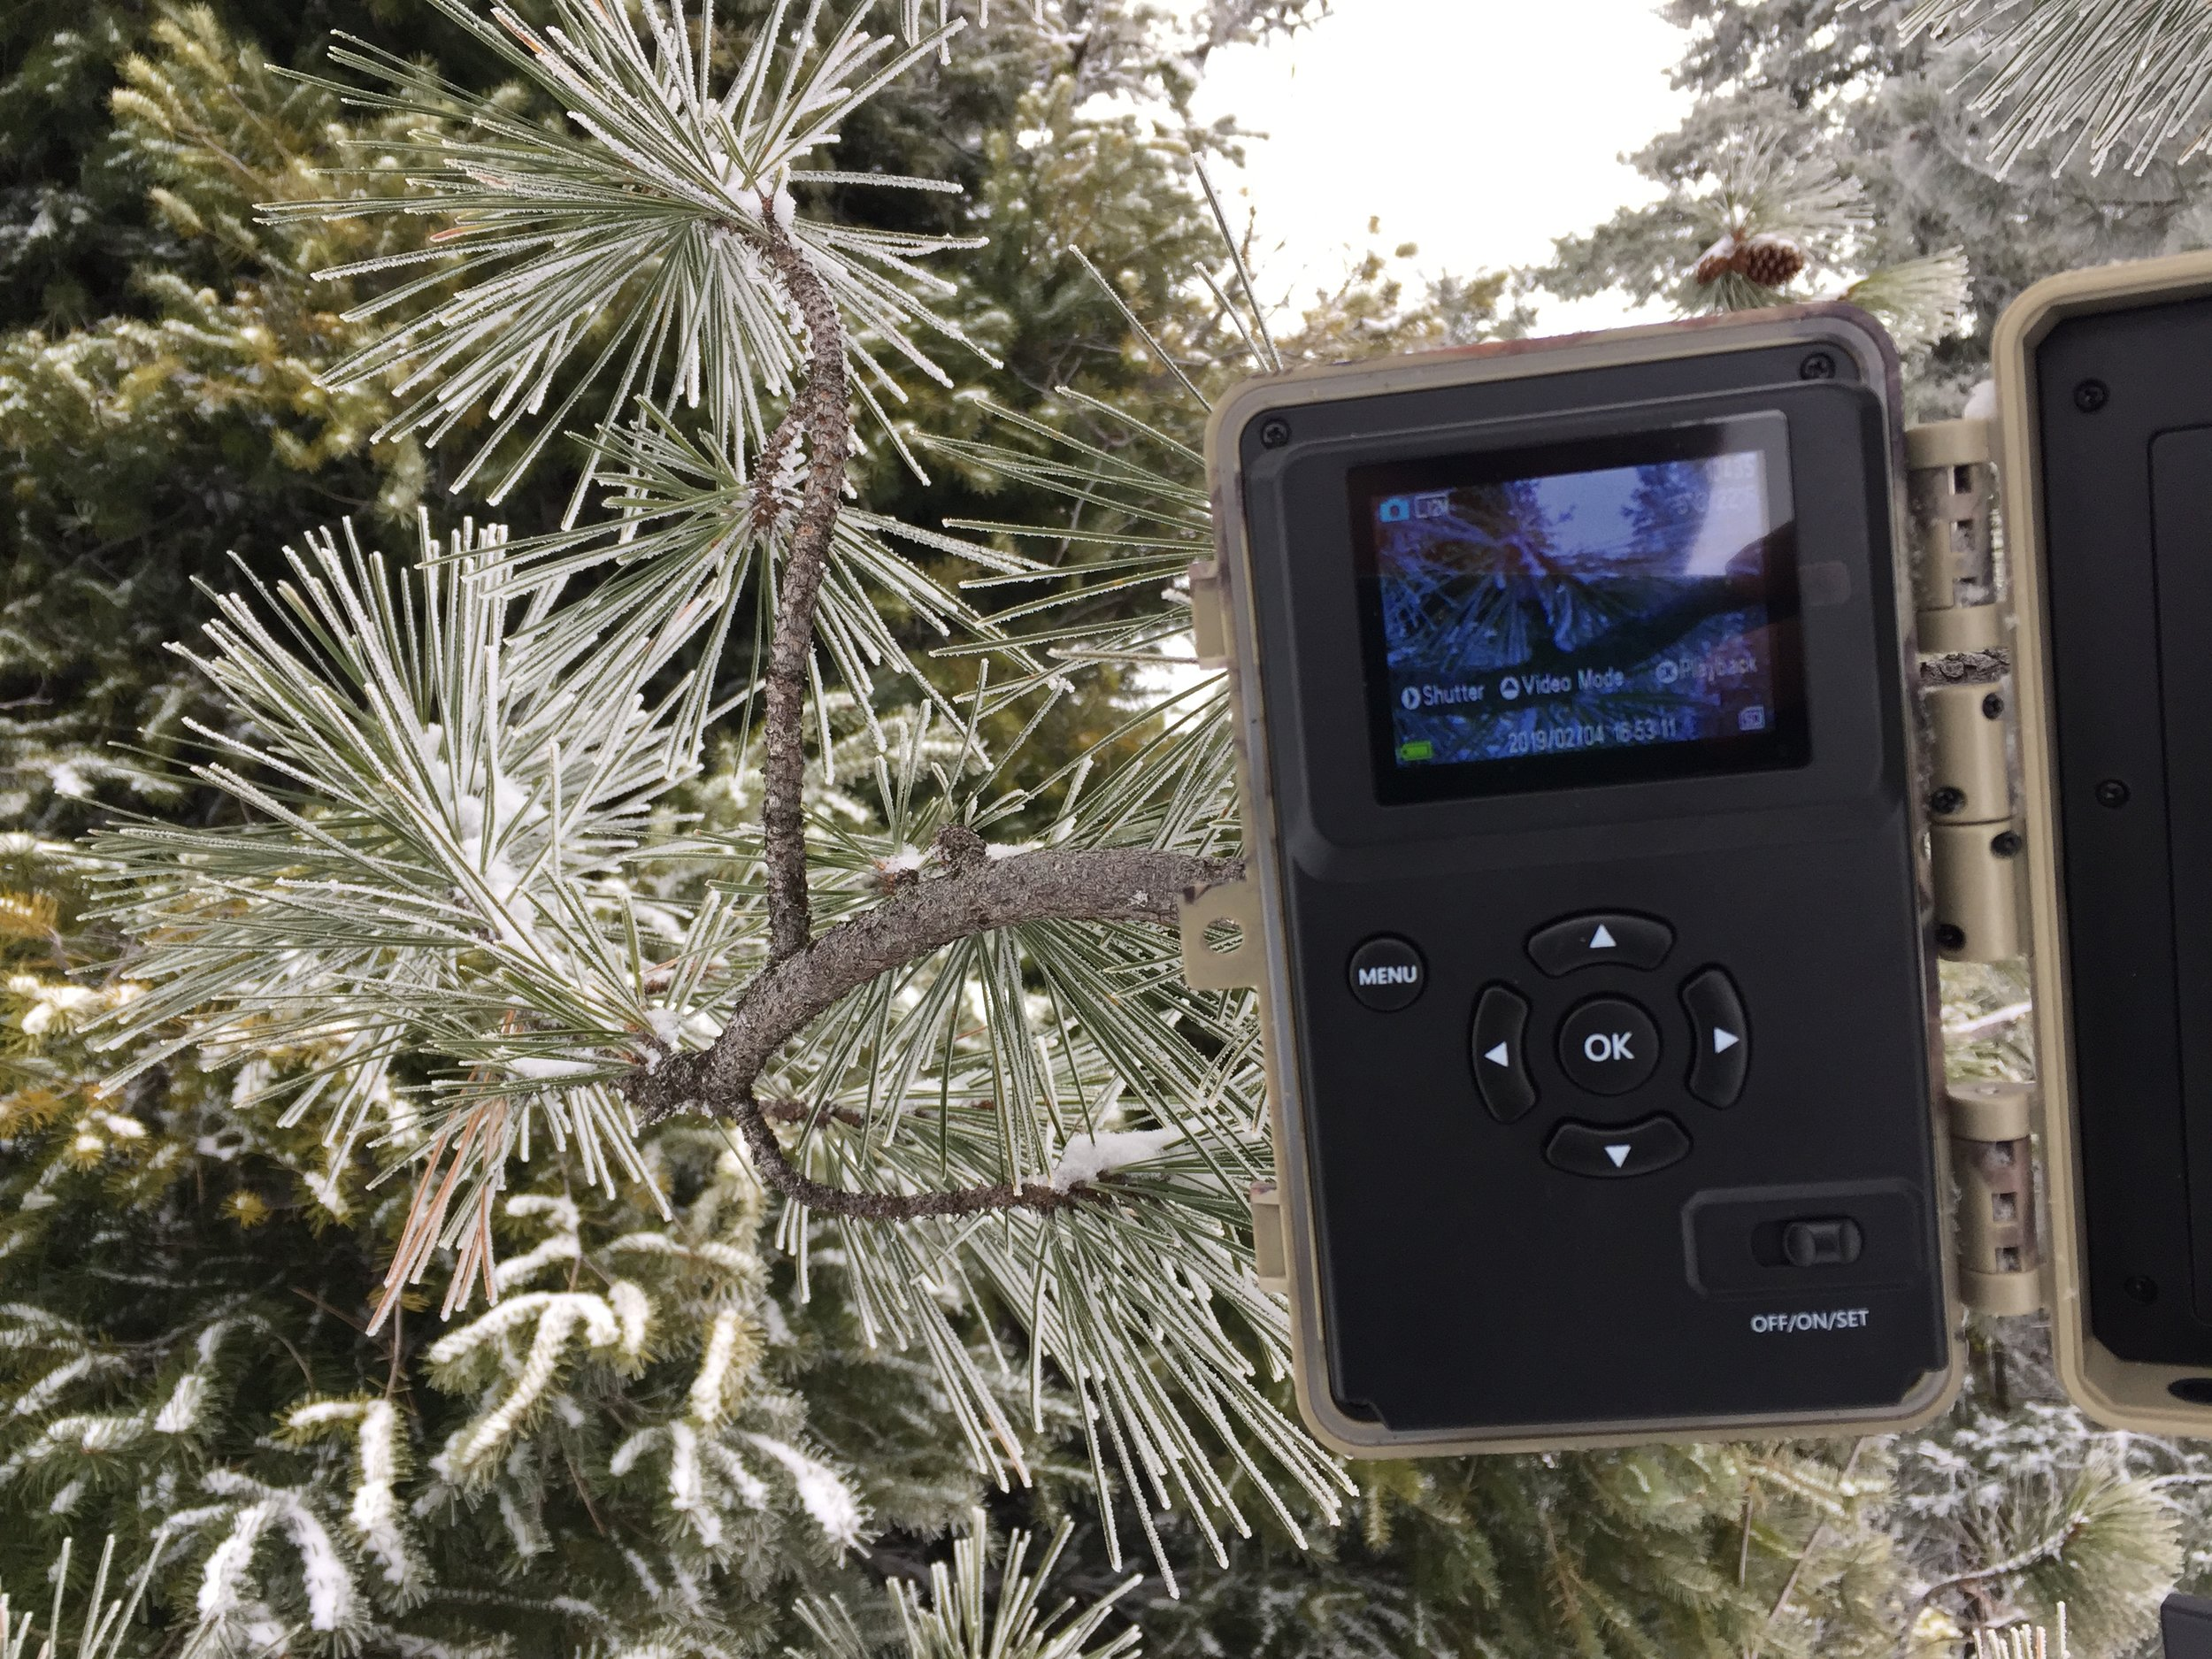 Time-lapse cameras at our research sites are mounted high in surrounding trees, programmed to snap images daily at consistent times of morning, afternoon and night. Photo by Emily Howe.